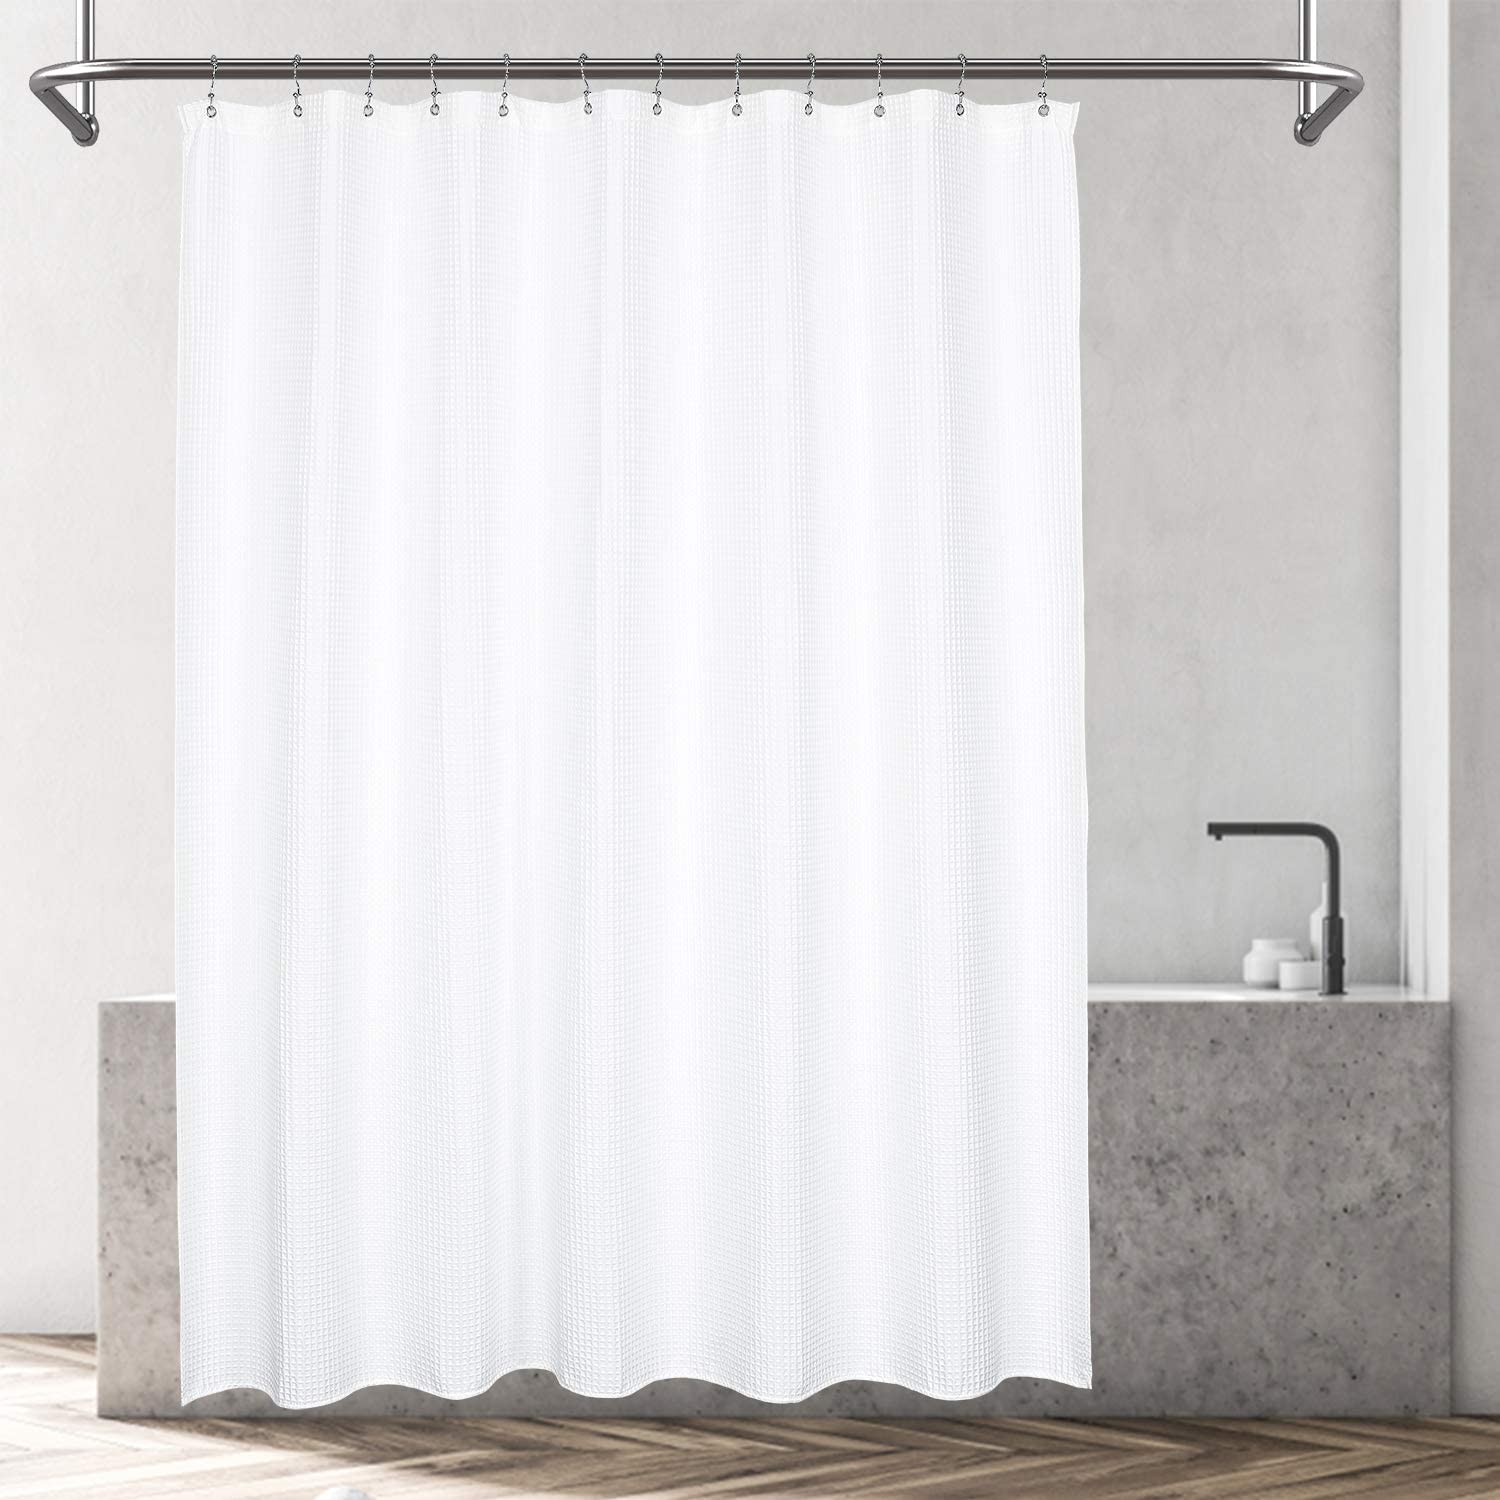 Barossa Design Cotton Blend Shower Curtain Honeycomb Waffle Weave, Hotel Collection, Spa, Washable, White, 72 x 72 inch: Home & Kitchen